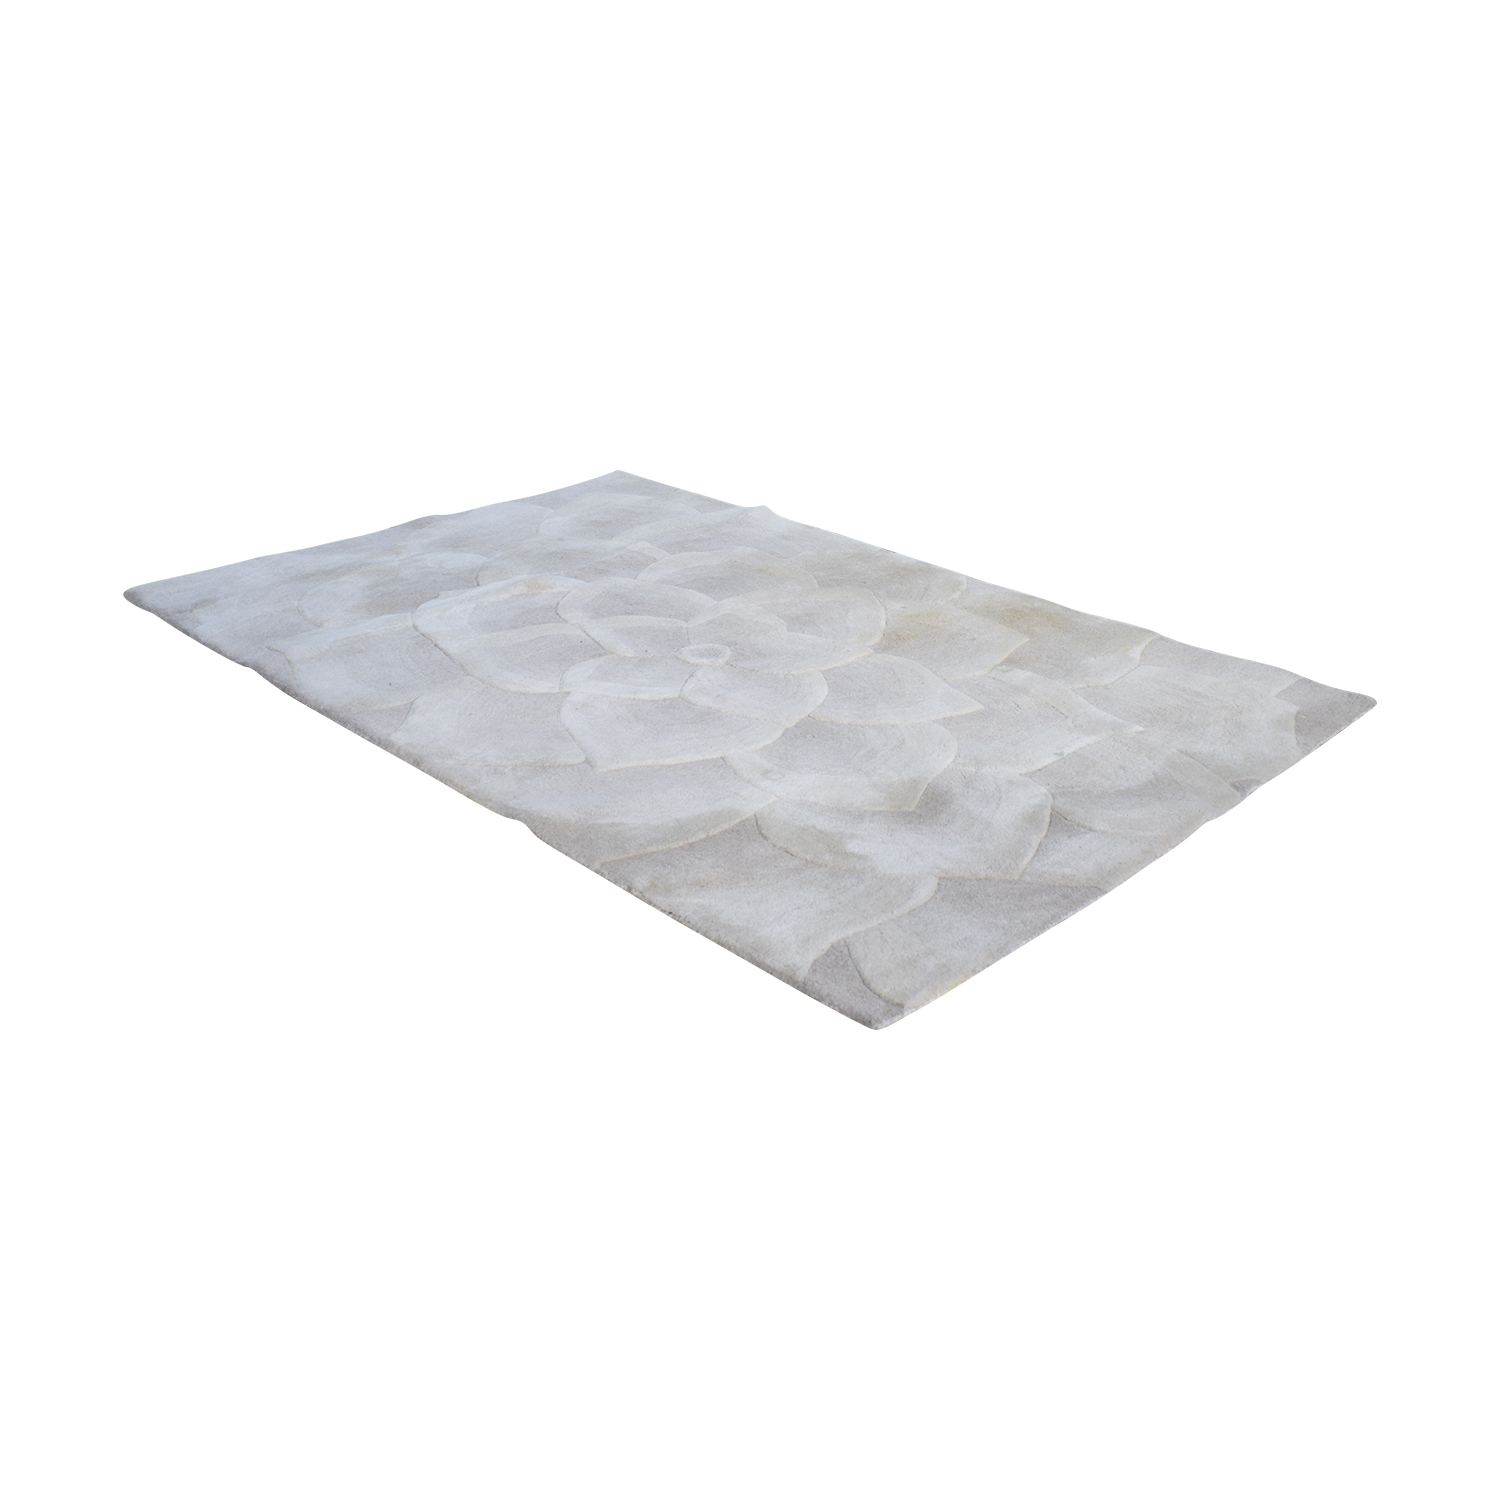 Pier 1 Pier 1 Rose Tufted Area Rug discount